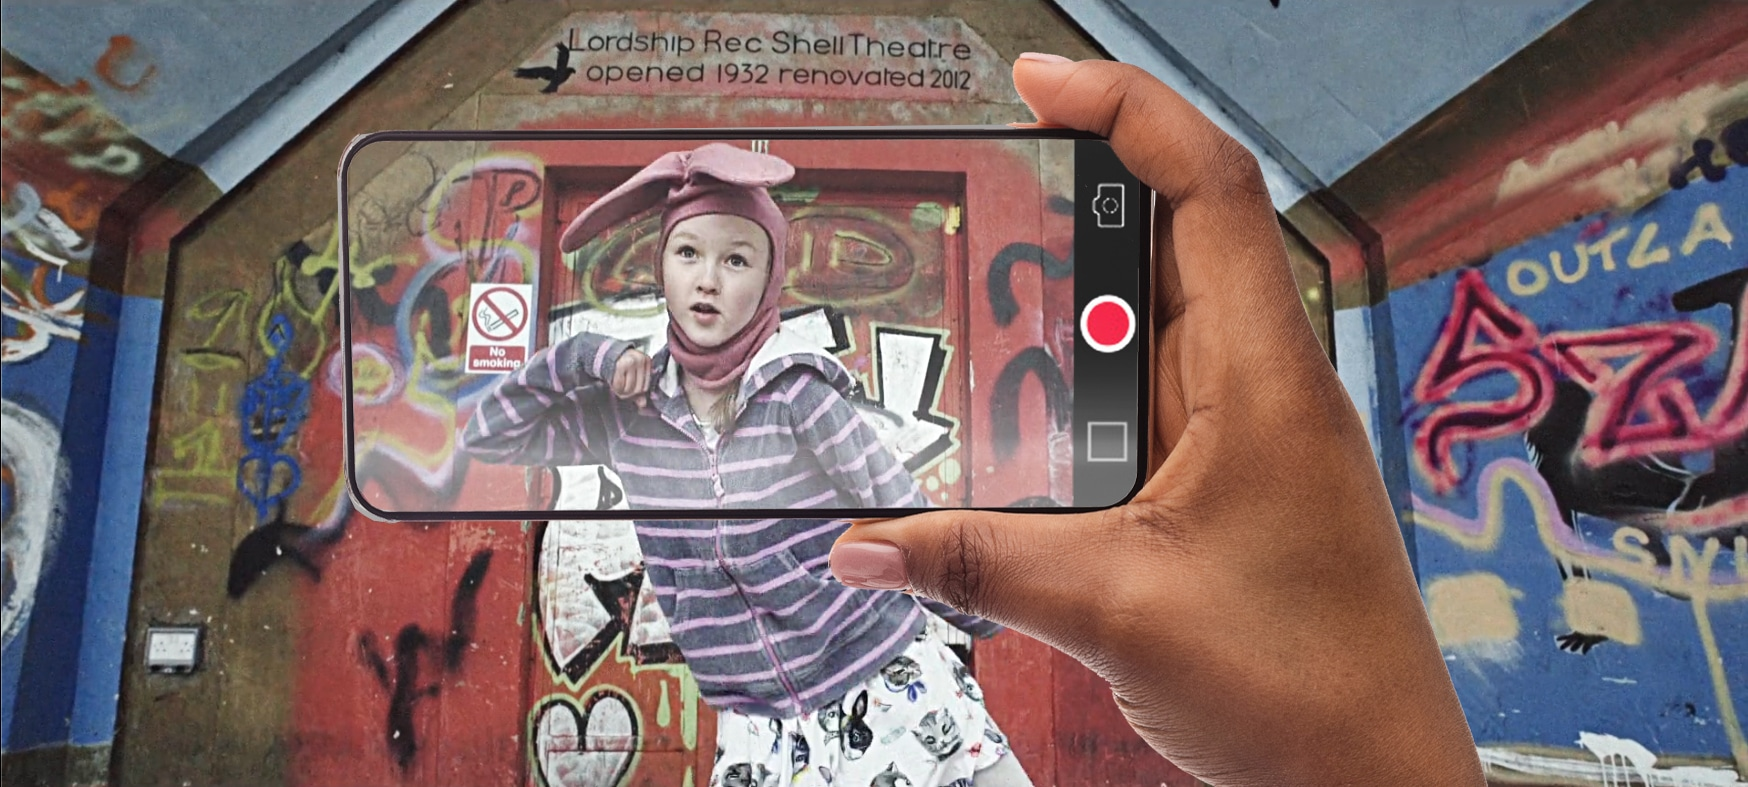 An image of a young girl dancing whilst wearing bunny ears. A mobile phone is filming her.